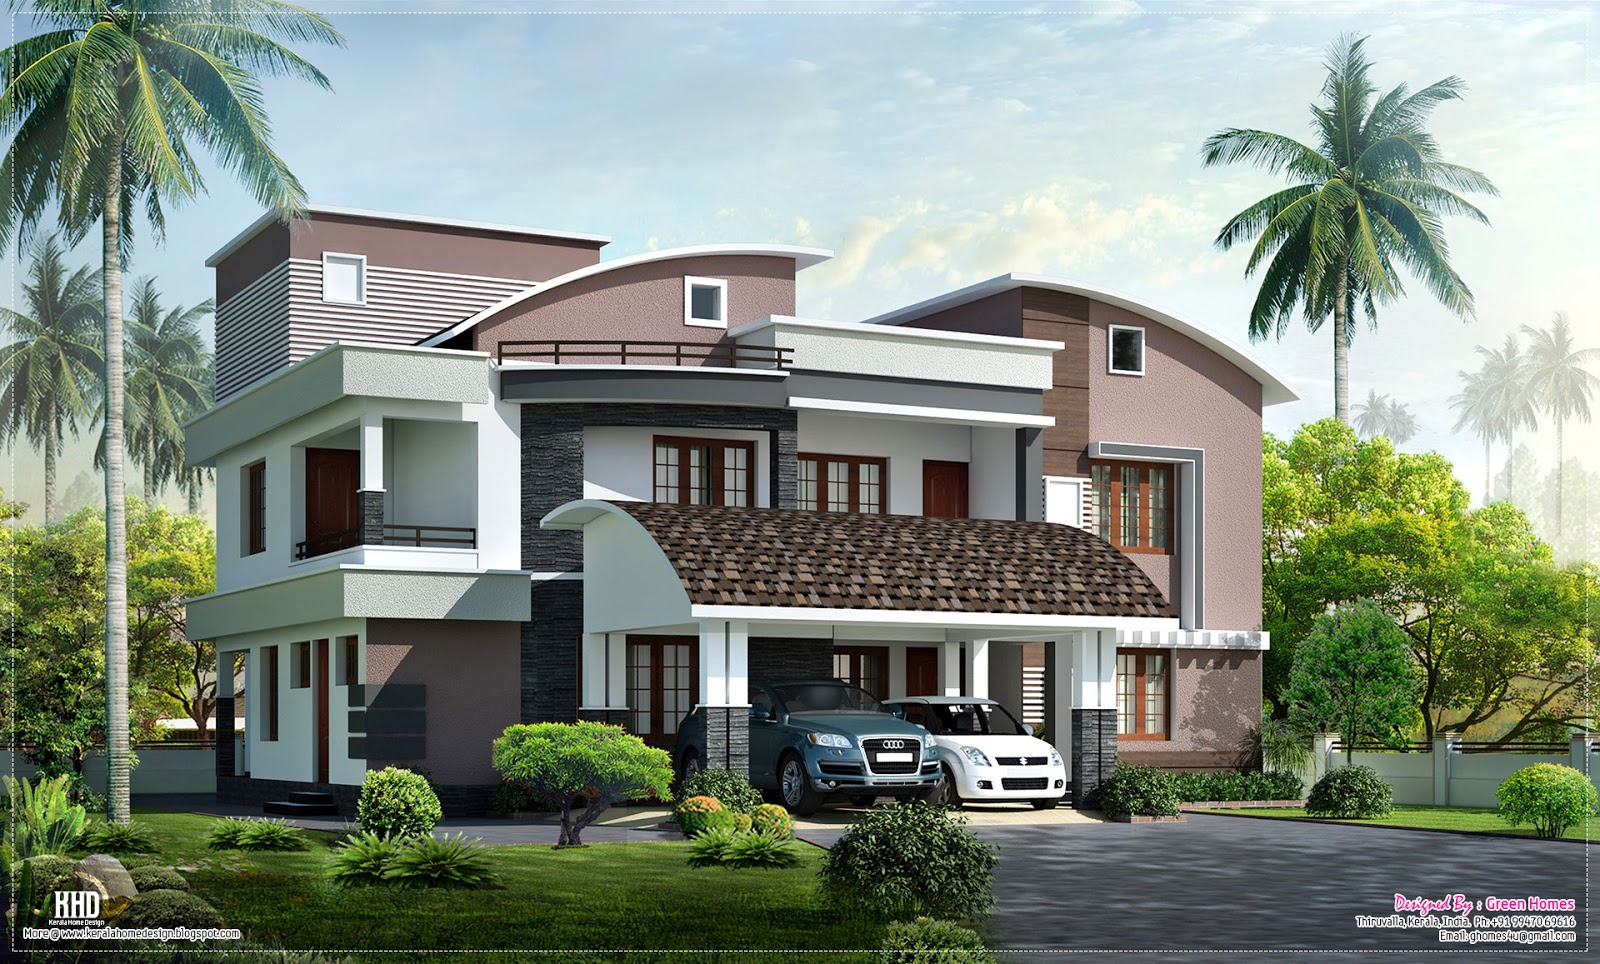 Modern style luxury villa exterior design kerala home for Modern luxury villa design